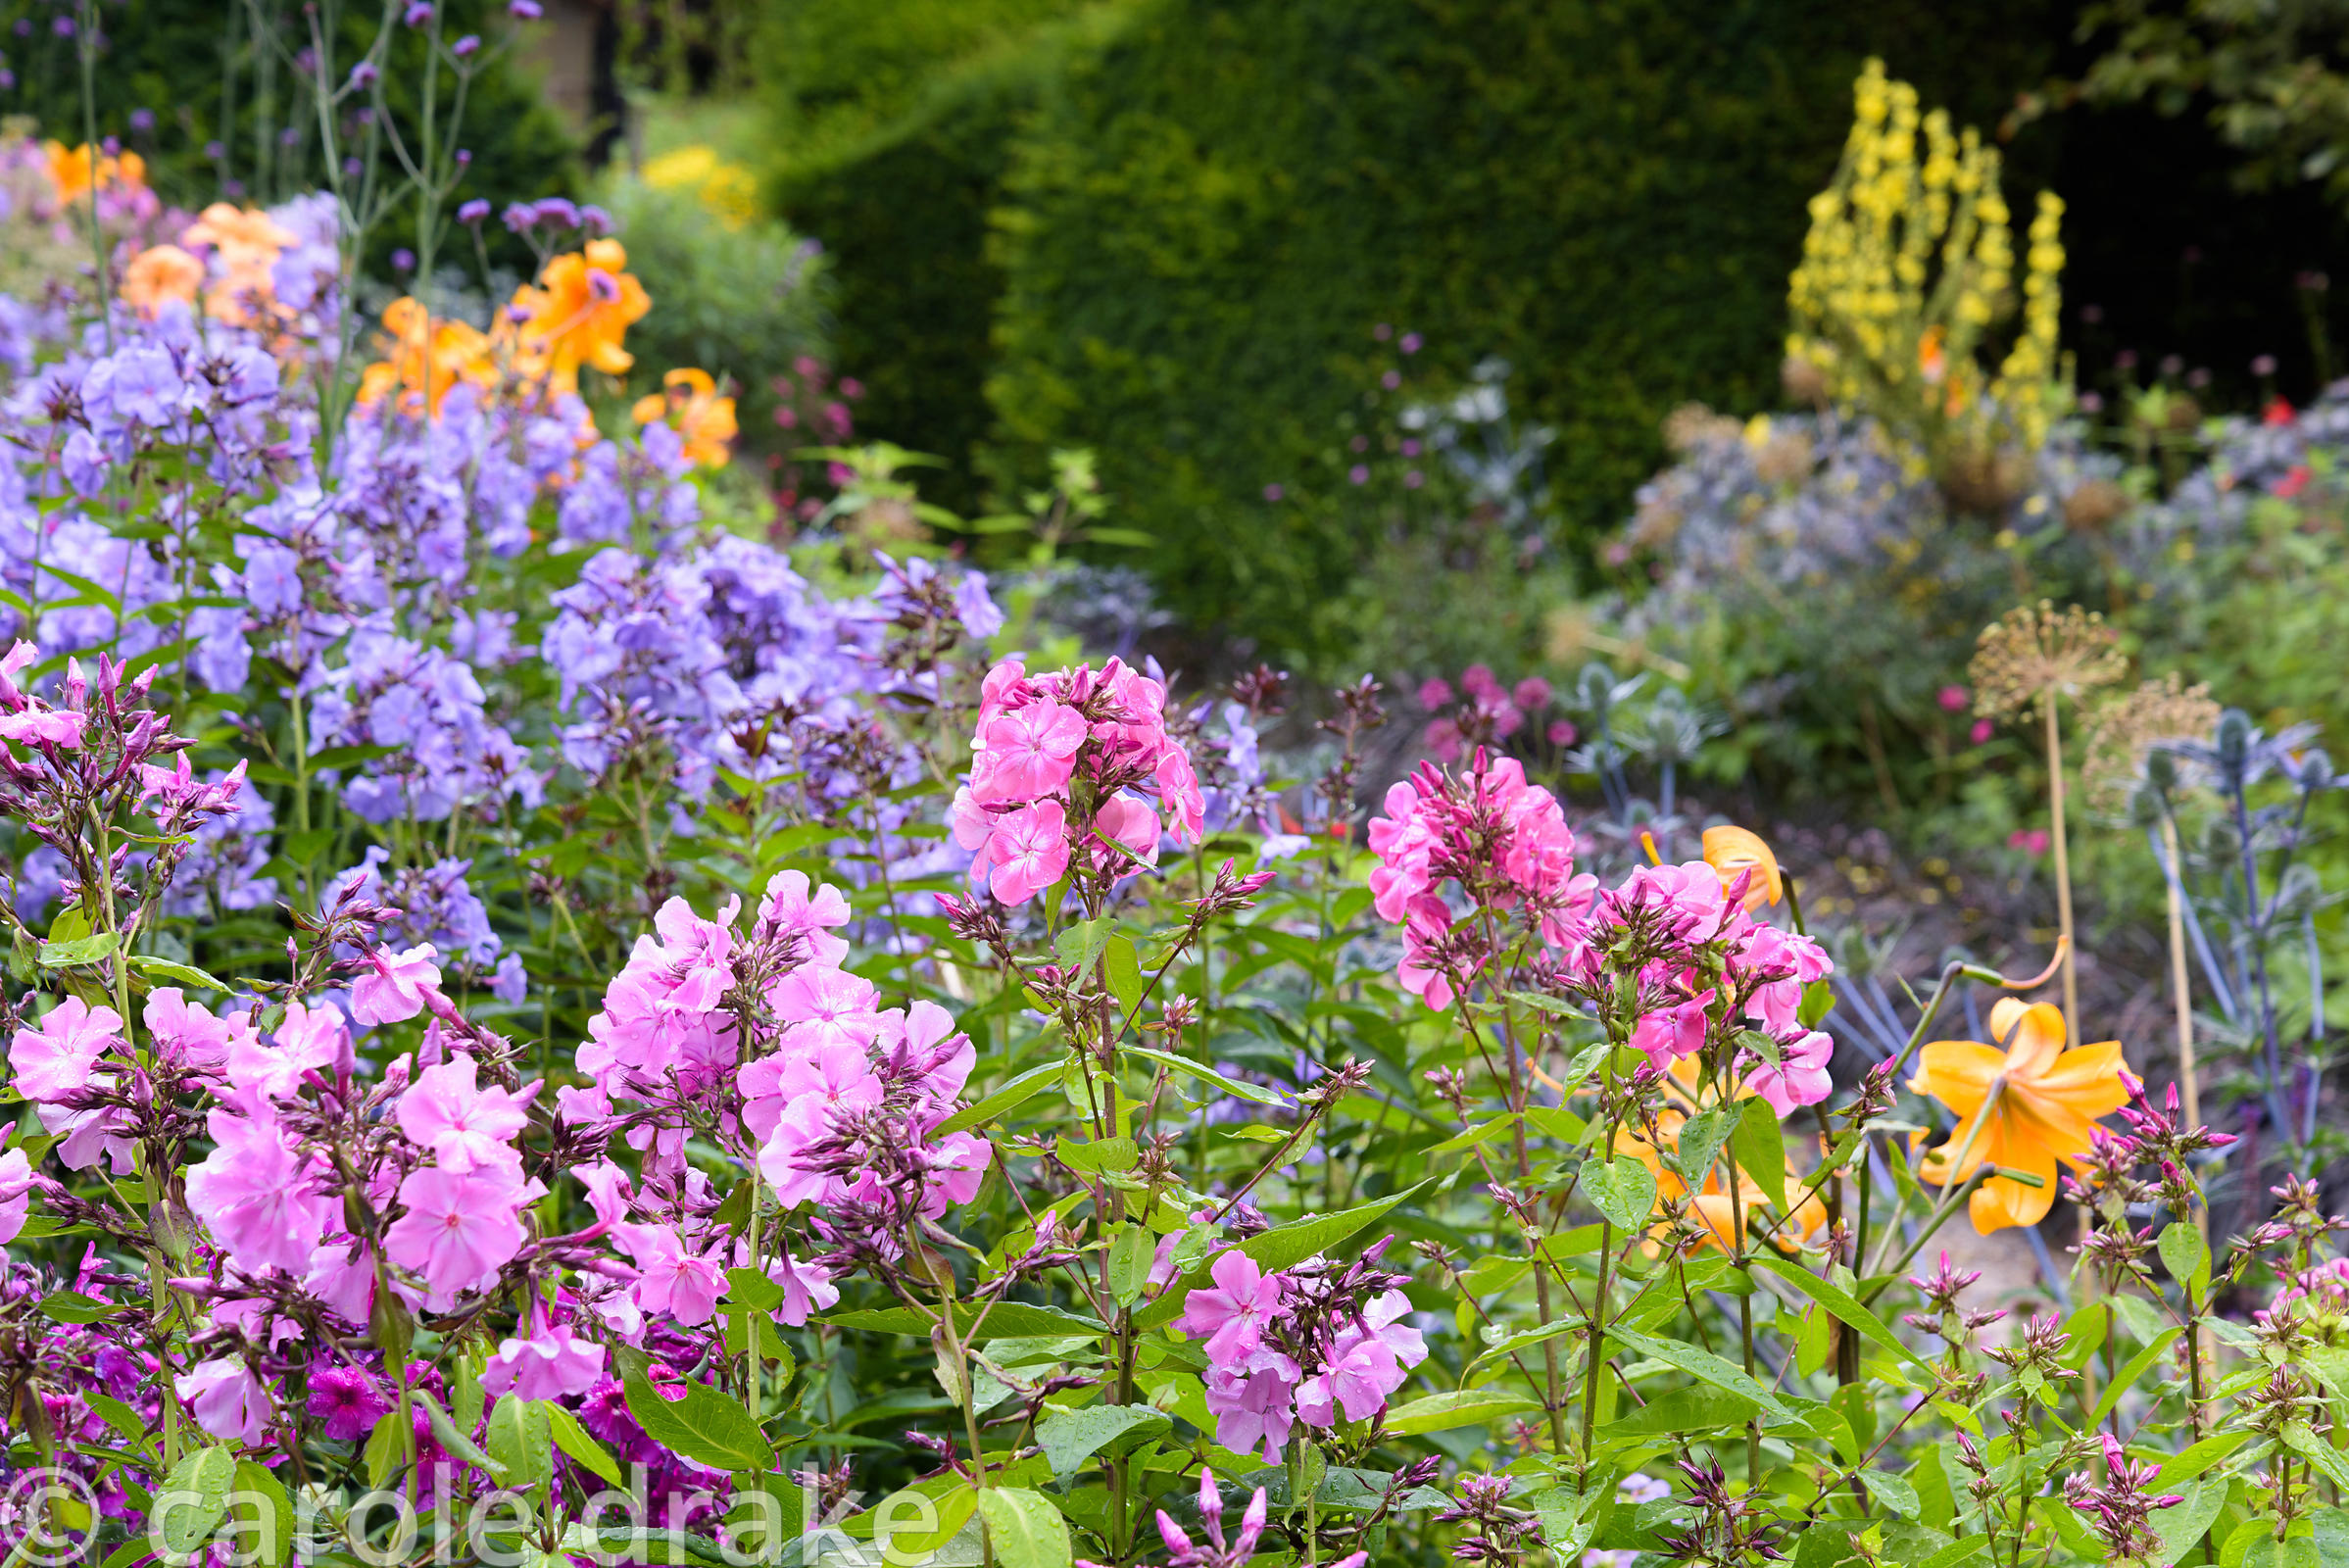 Pink and violet phlox with orange lilies and Verbena bonariensis in the Canal Garden at York Gate Garden, Adel in July